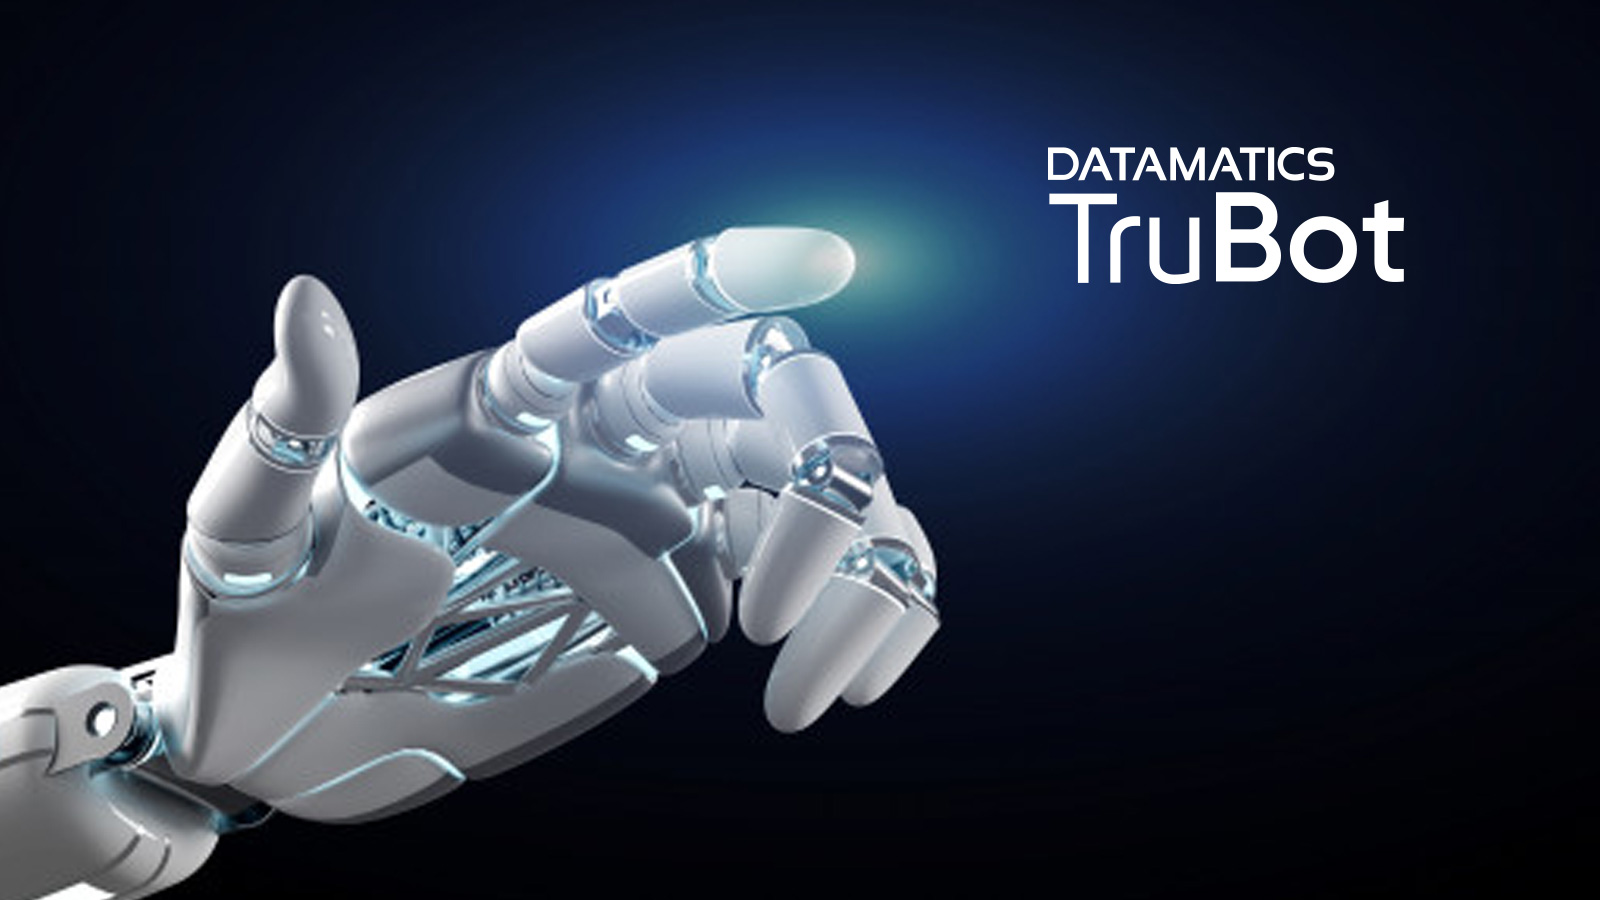 Datamatics Recognized in the 2019 Gartner MQ for RPA Software